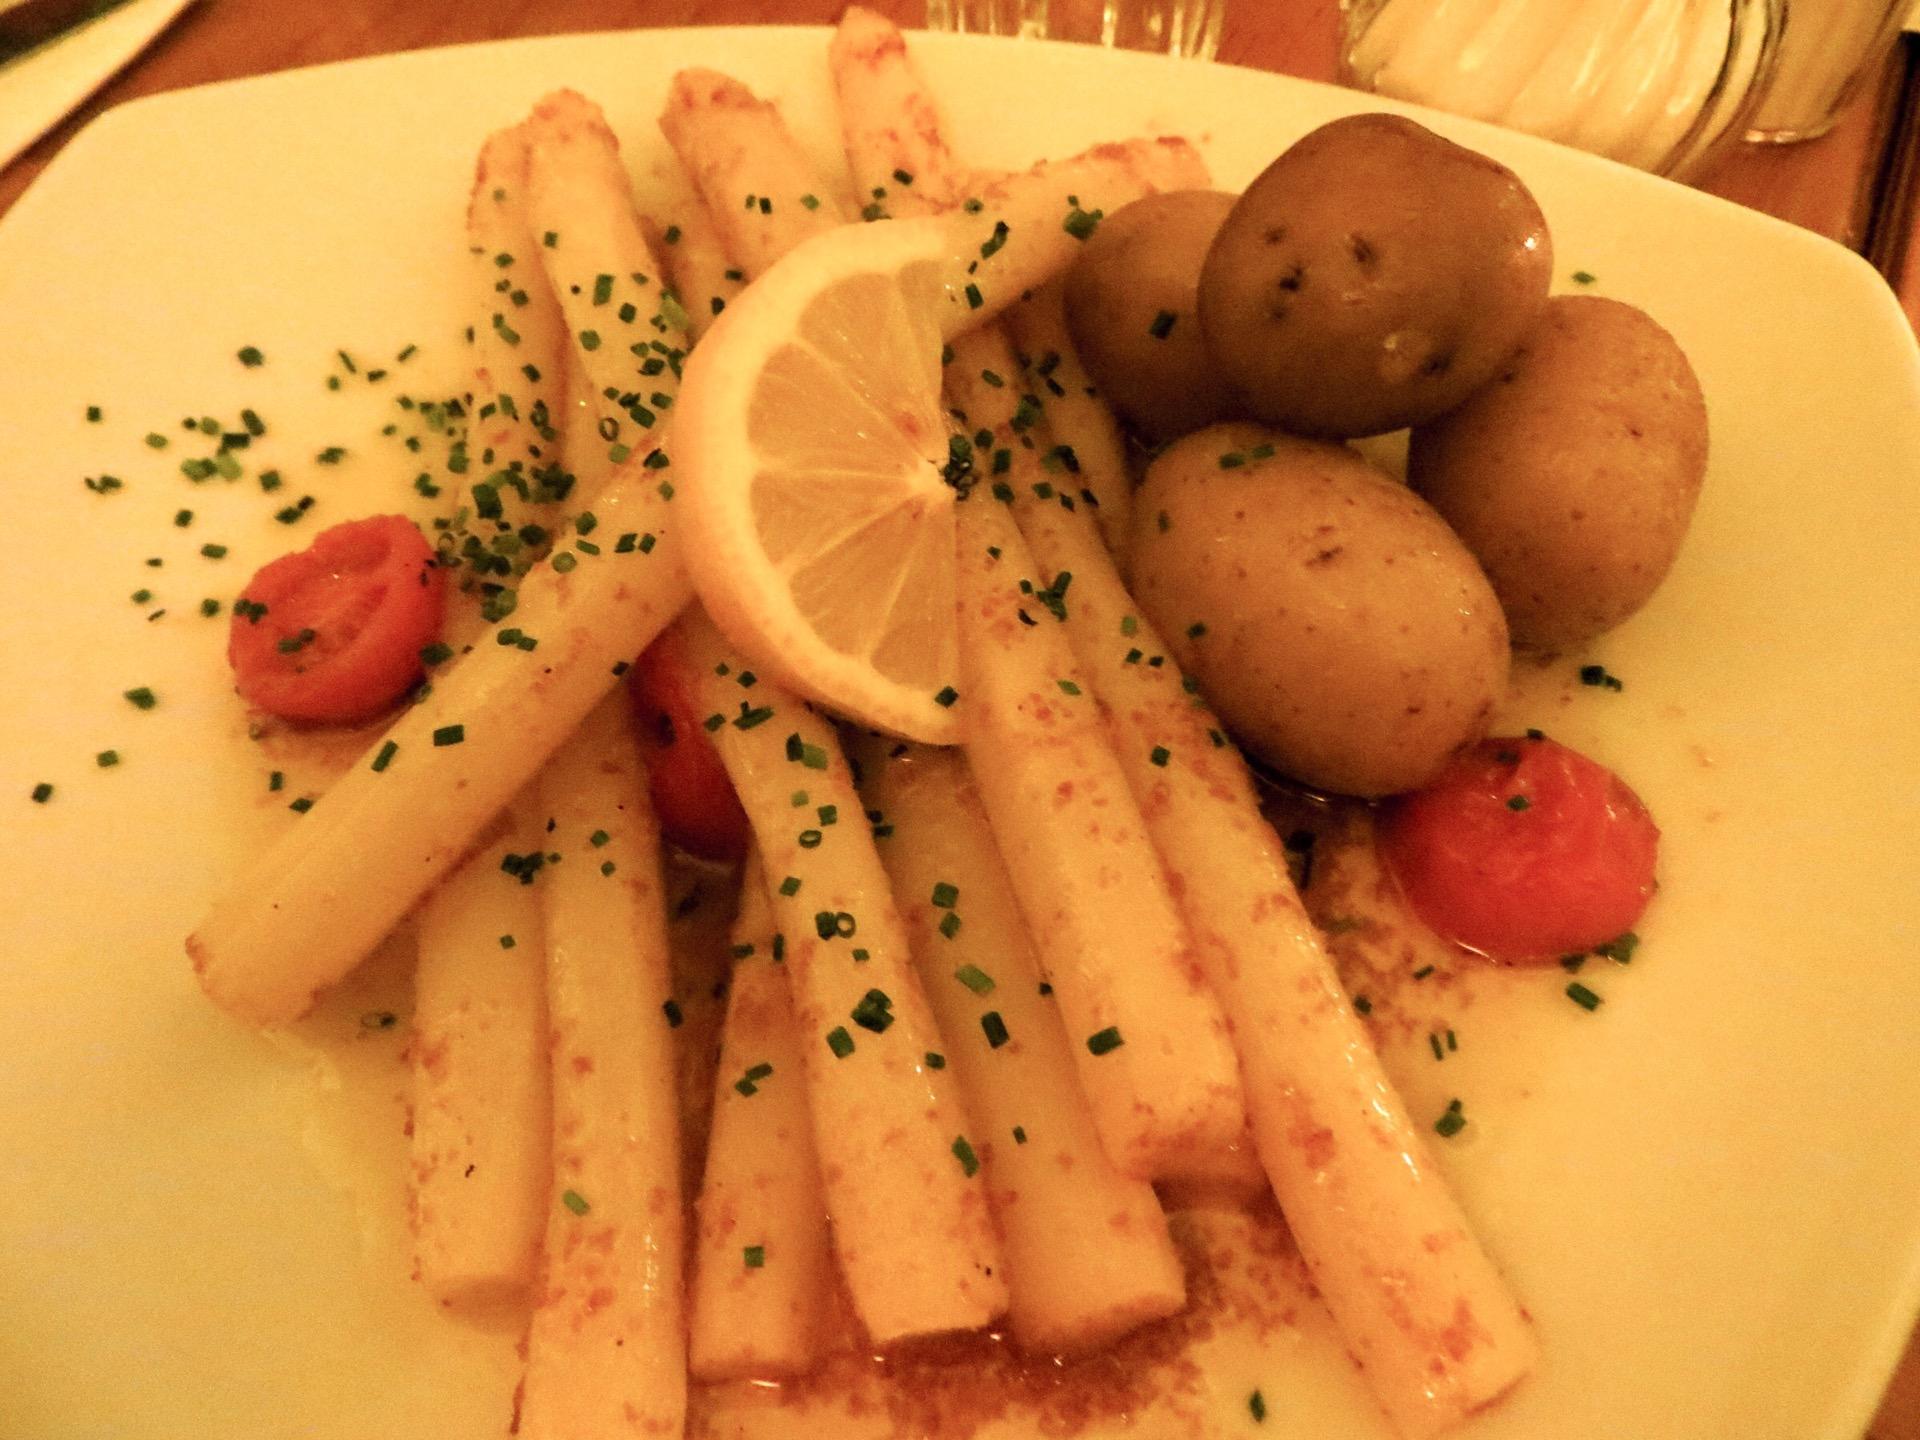 White Spargel (asparagus), Germany